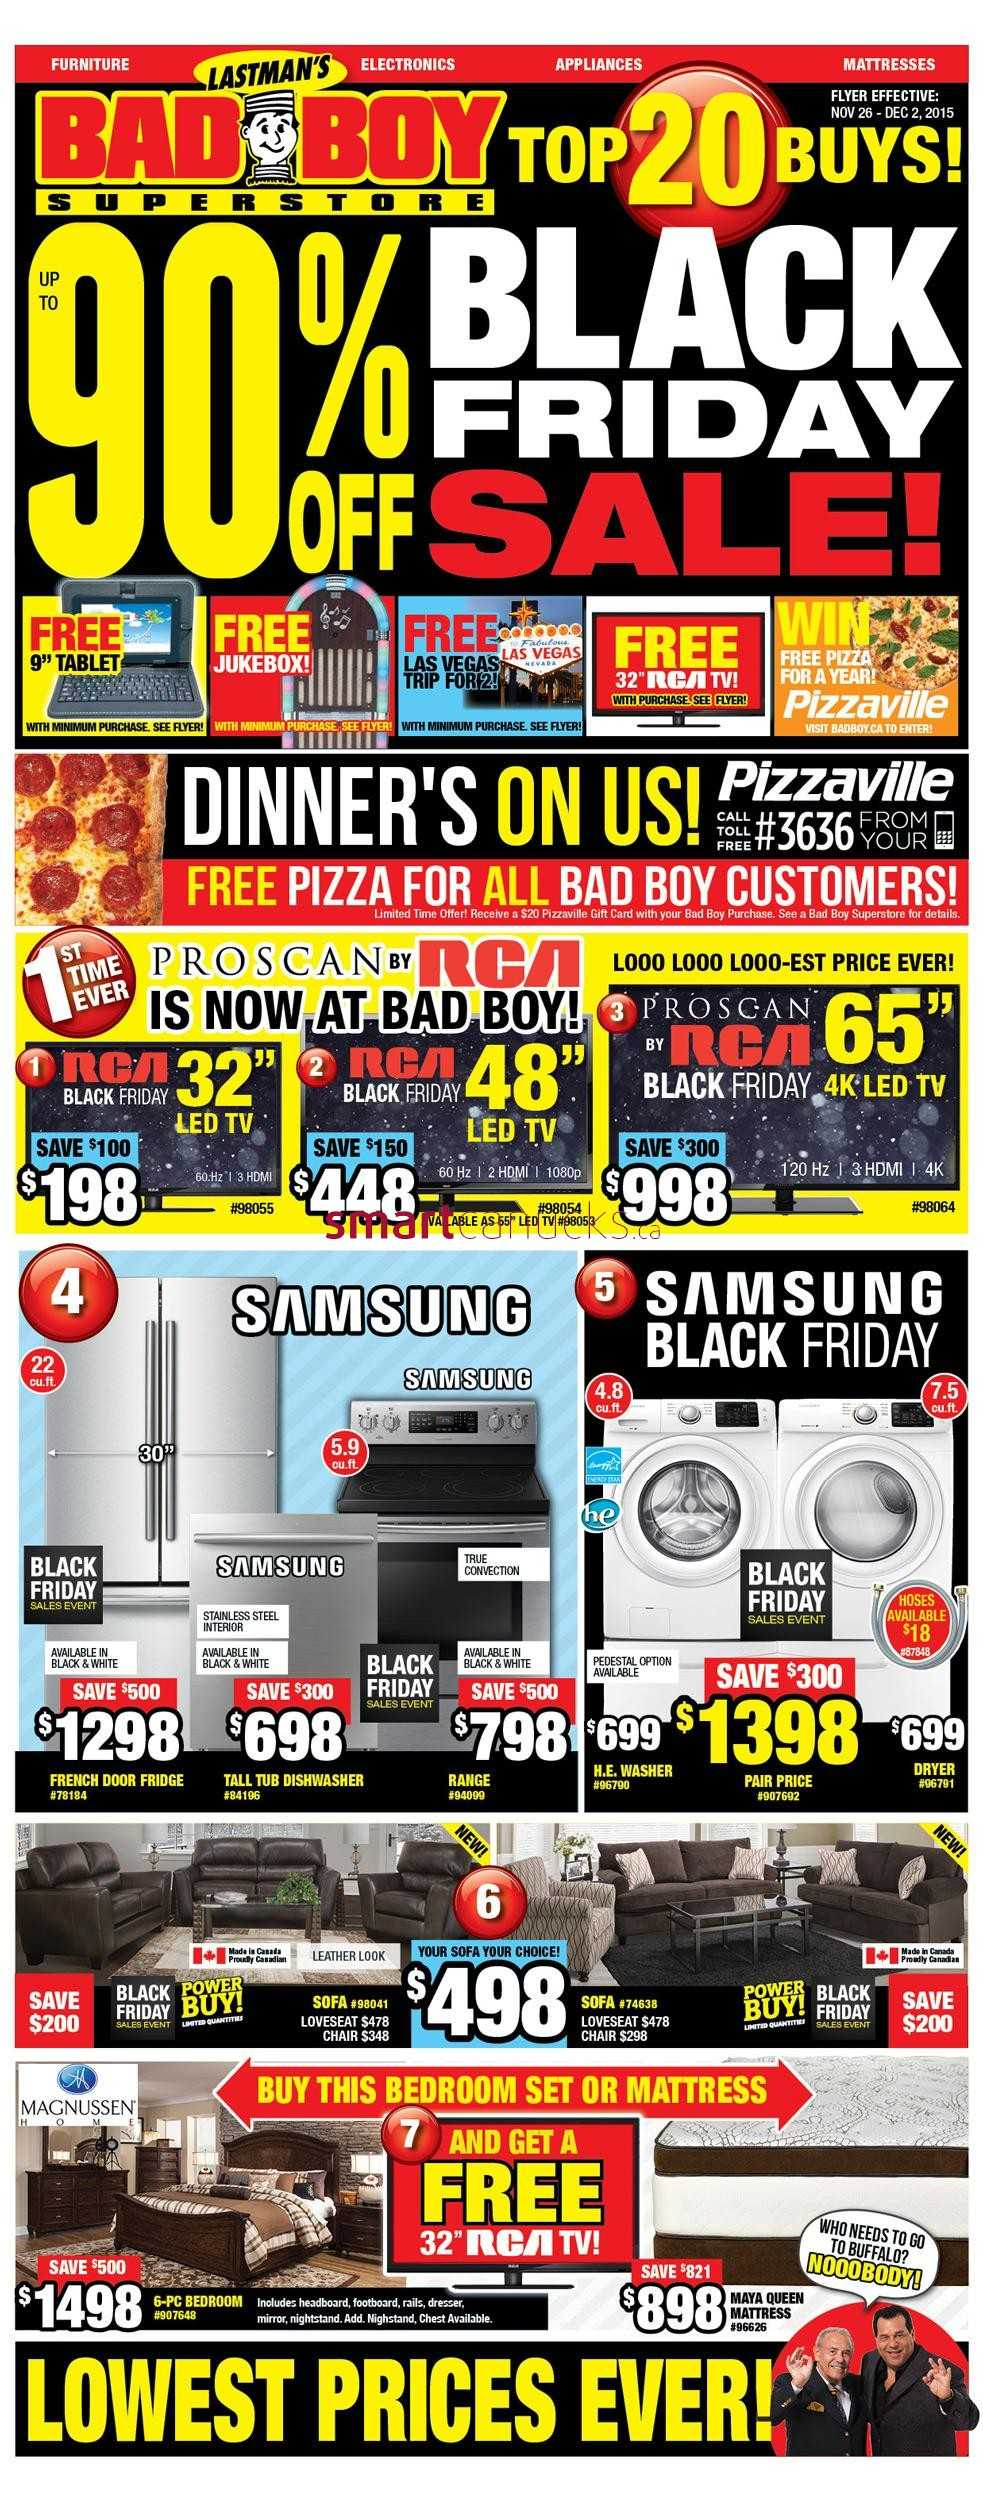 Visiting your local Walmart store on Black Friday lets you find plenty of savings on the gifts you want. Specials start at times announced in our ads, and in addition to advertised Black Friday specials, an in-store excursion on the day after Thanksgiving can reveal some unexpected savings.